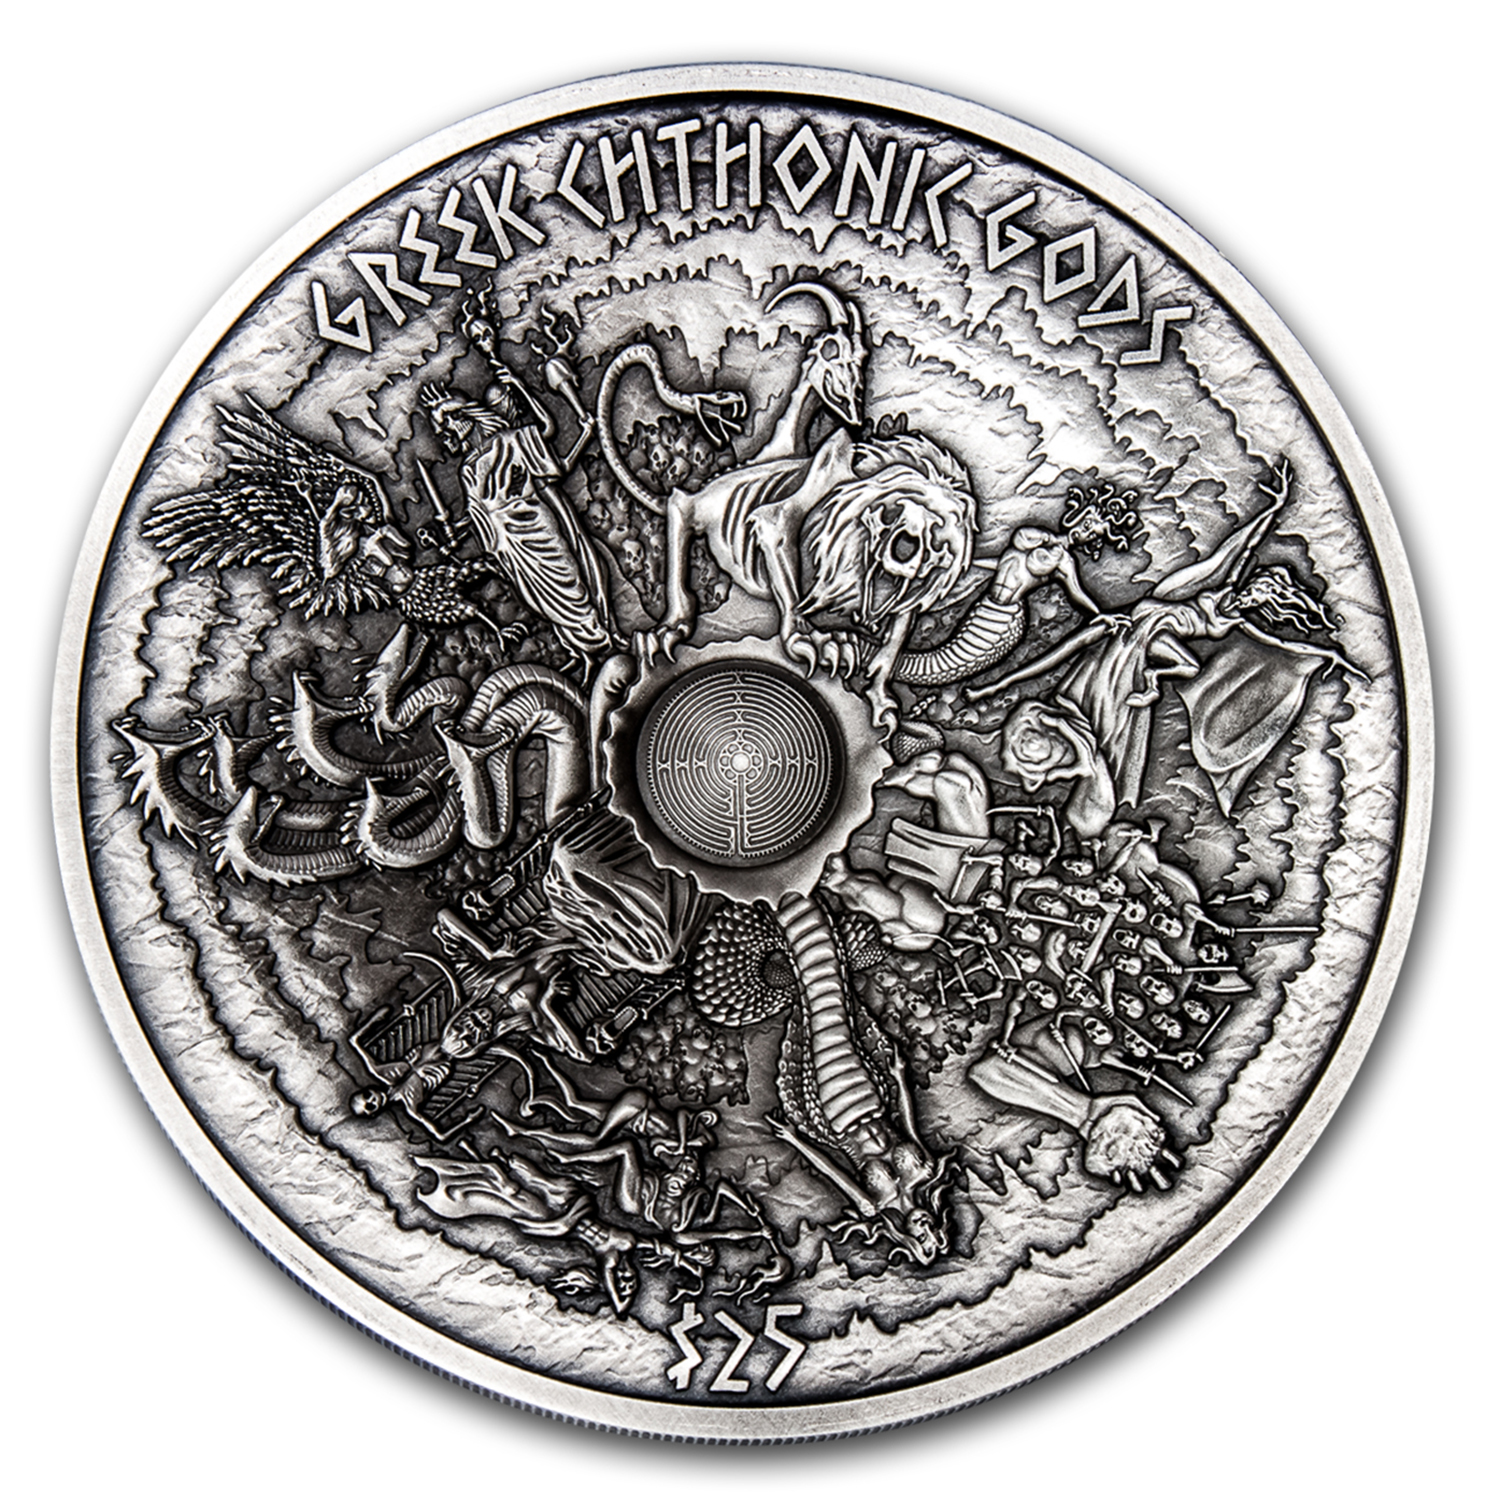 2017 Samoa 1 kilo Silver Greek Chthonic Gods Multiple Layer Coin